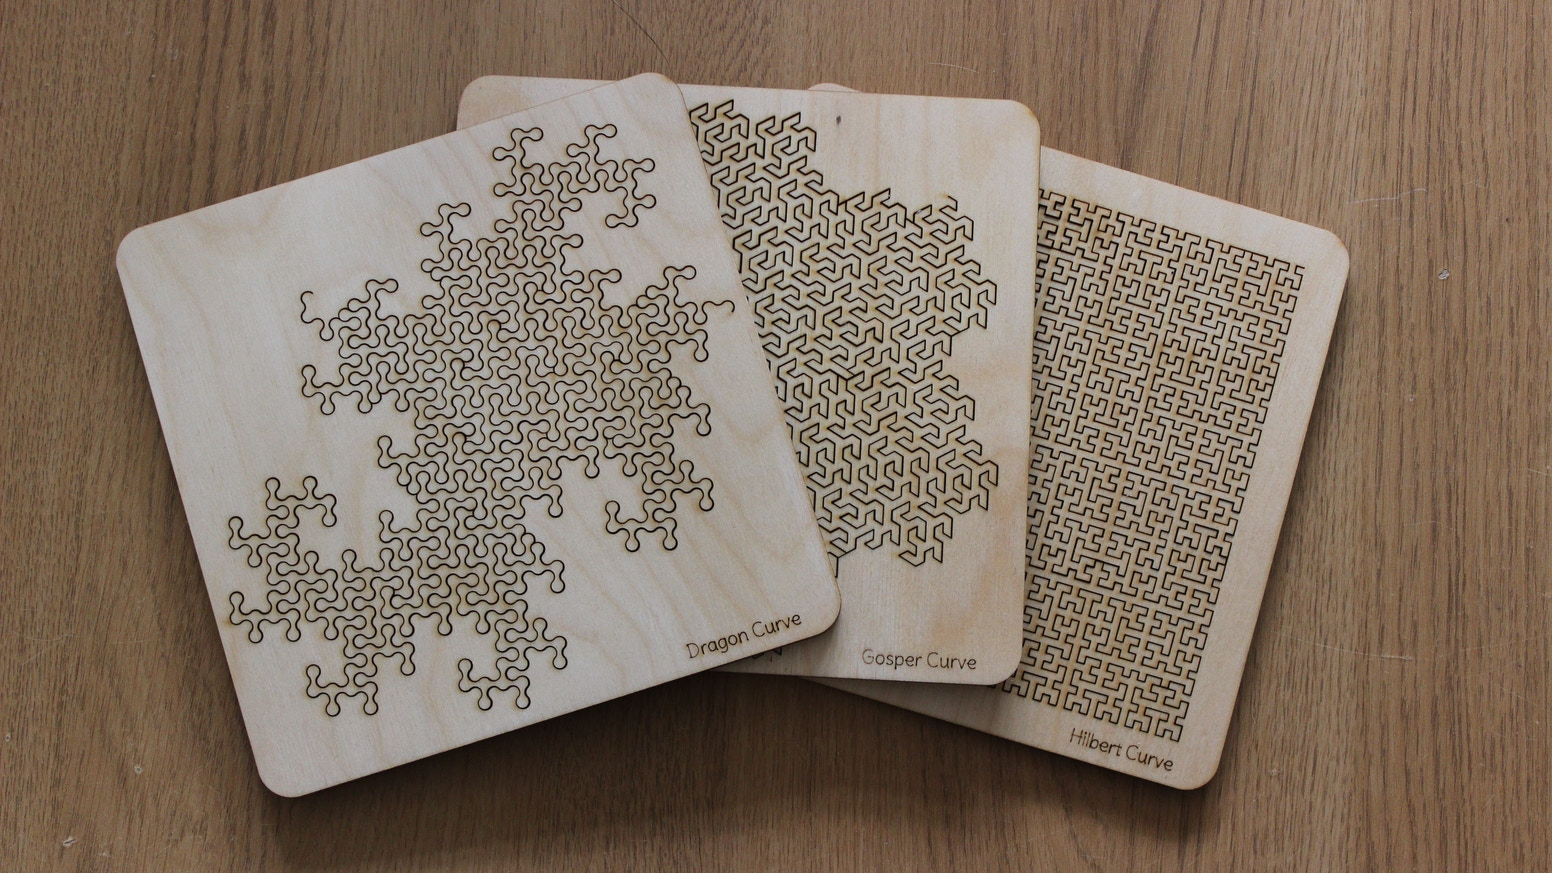 FOUR fiendishly complicated tray puzzles based upon space filling fractal curves. Often copied, but these are the original designs.